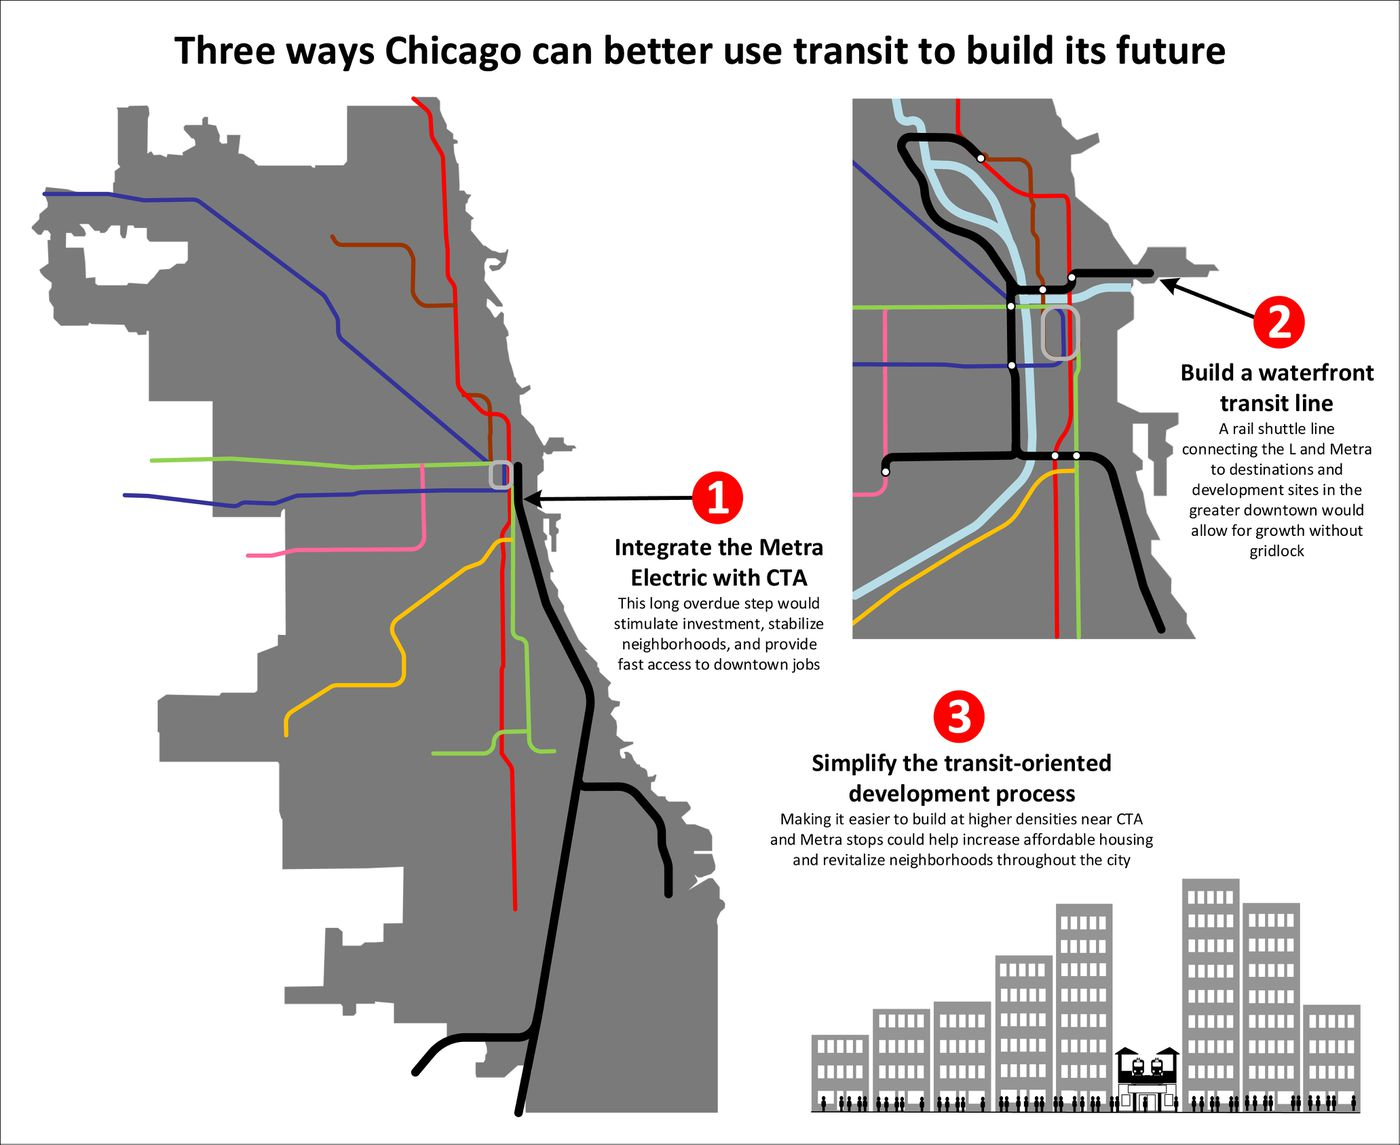 Chicago's best future might be a train stop away - Chicago ... on the l chicago map, chicago subway station map, chicago l train system, chicago el map, austin metro transit map, chicago red line train routes, chicago metra blue line map, san francisco transportation map, uptown map, chicago blue line train map, chicago cta map with streets, chicago orange line map, chicago illinois state map, chicago train routes map, chicago supermarkets map, chicago rail map, orlando park il map, philadelphia location on a map,